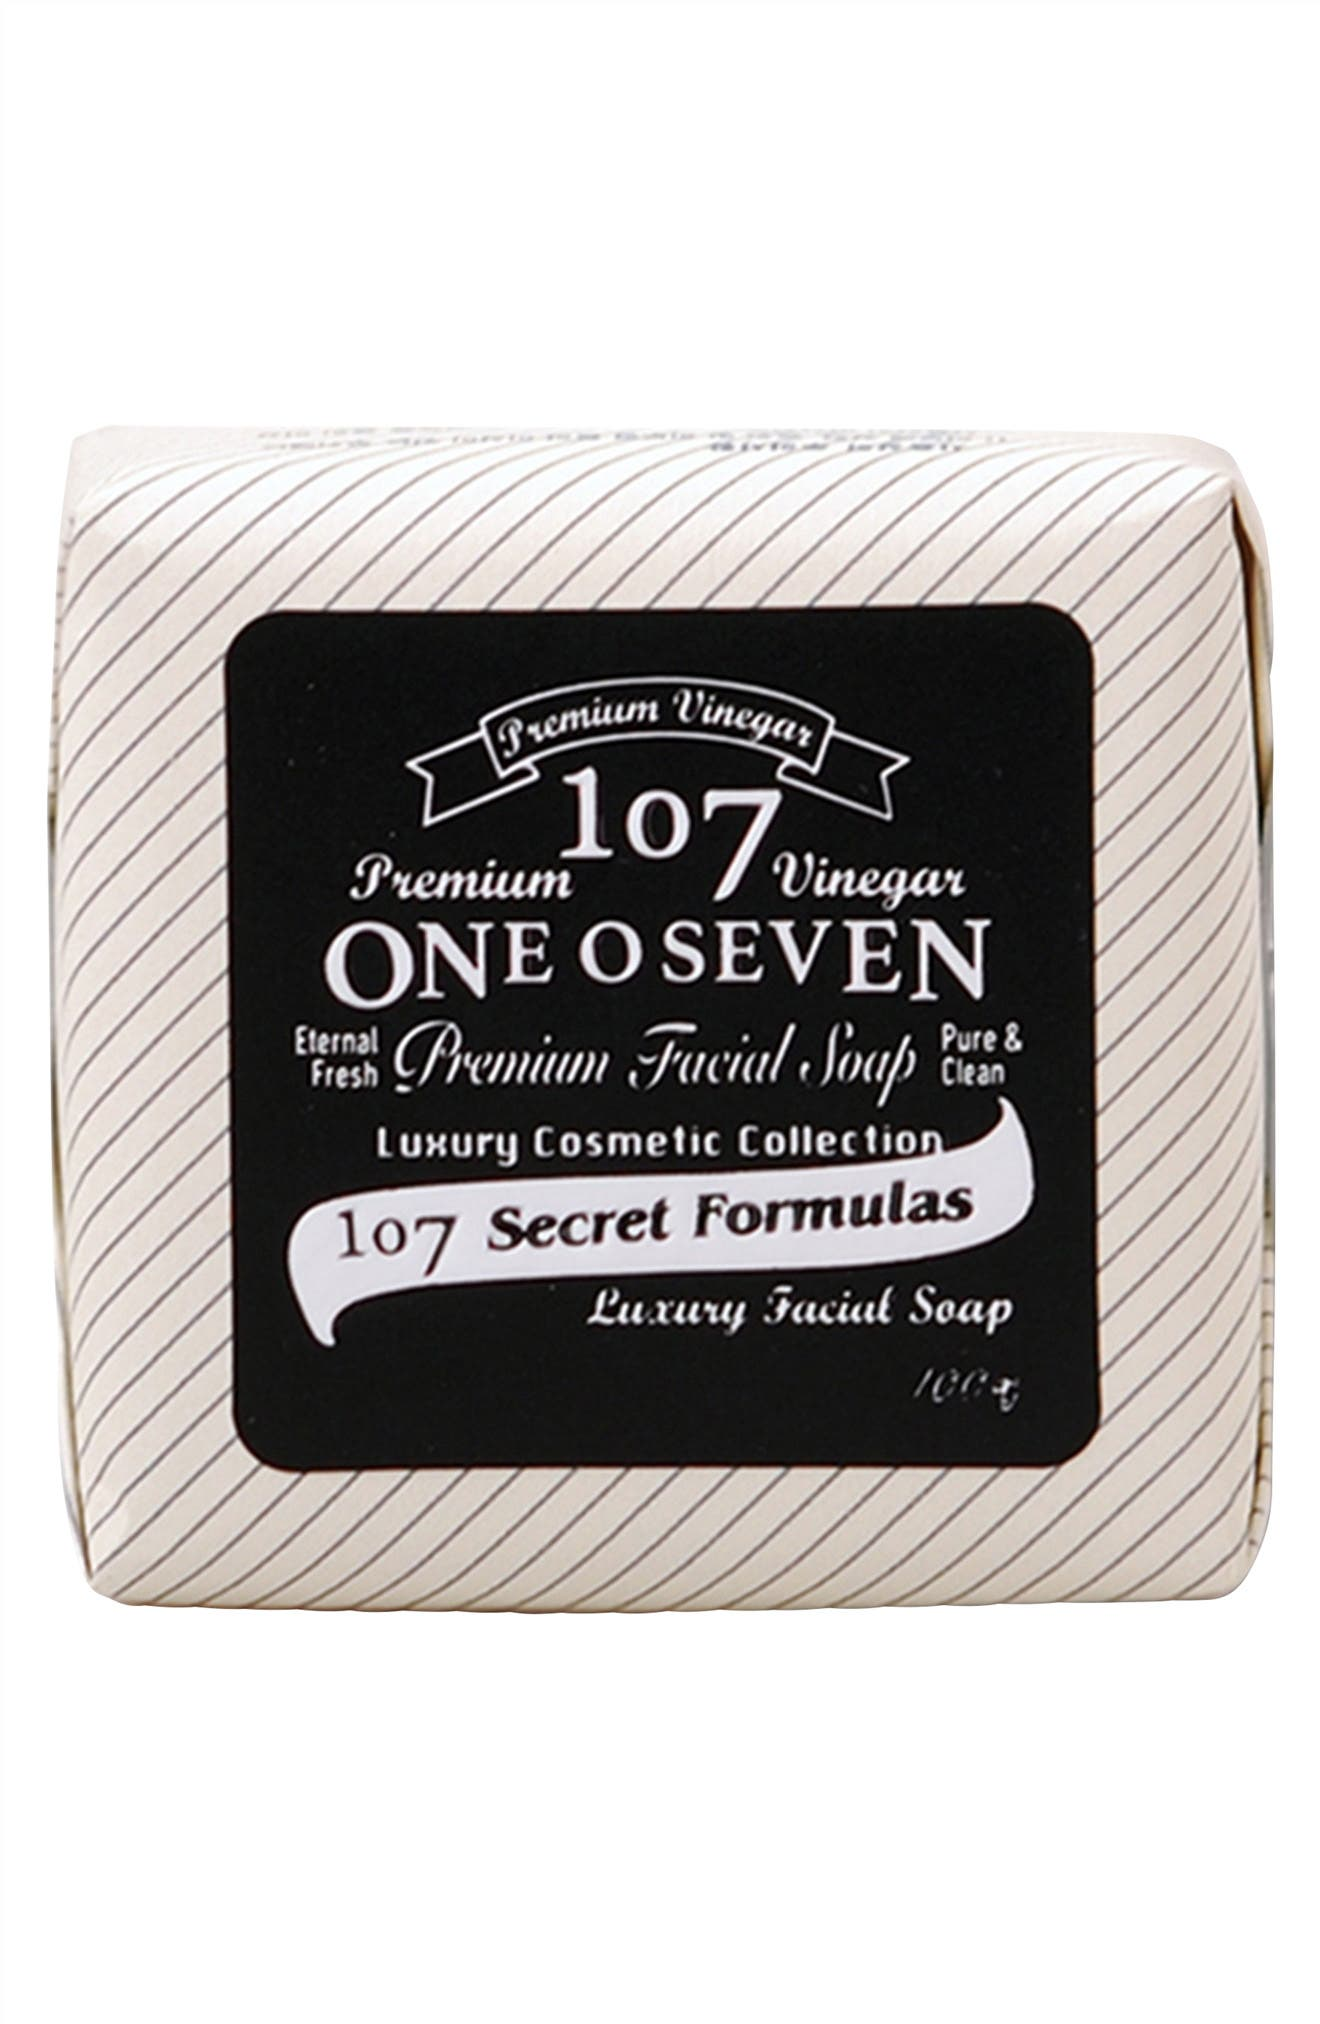 Alternate Image 1 Selected - 107 ONEOSEVEN Premium Black Soap